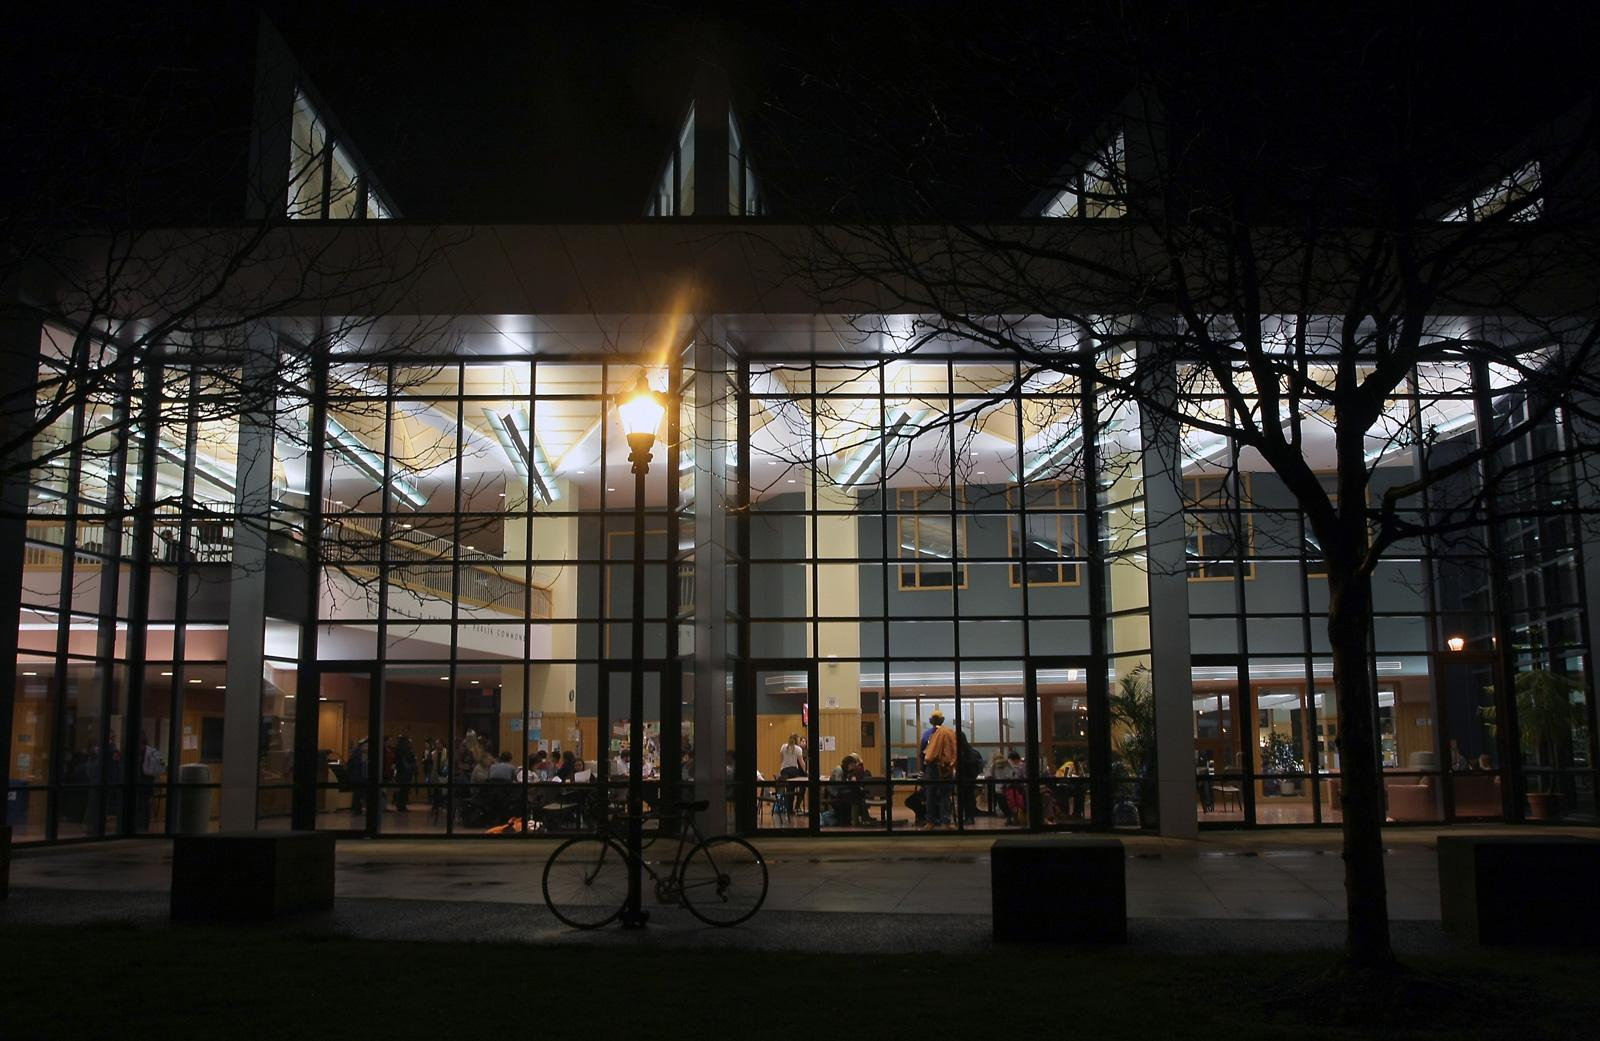 A nighttime view looking into the busy, lit up atrium of the science center.